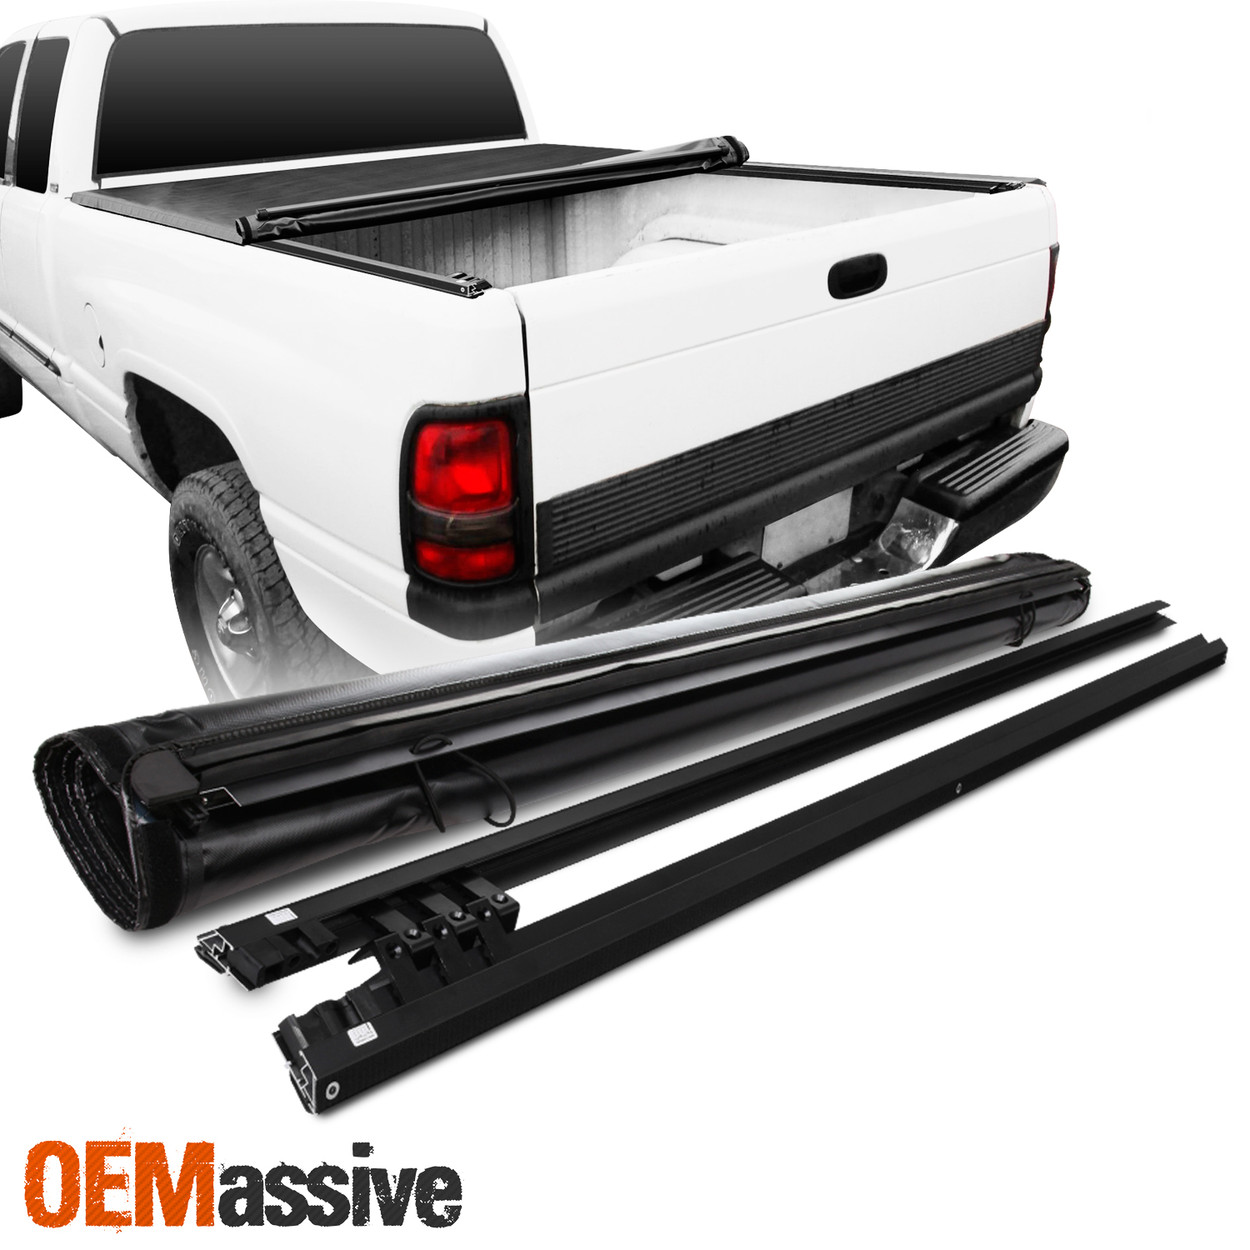 Soft Roll Up Tonneau Cover For 1994 2001 2002 Dodge Ram 1500 2500 3500 78 Bed Oemassive